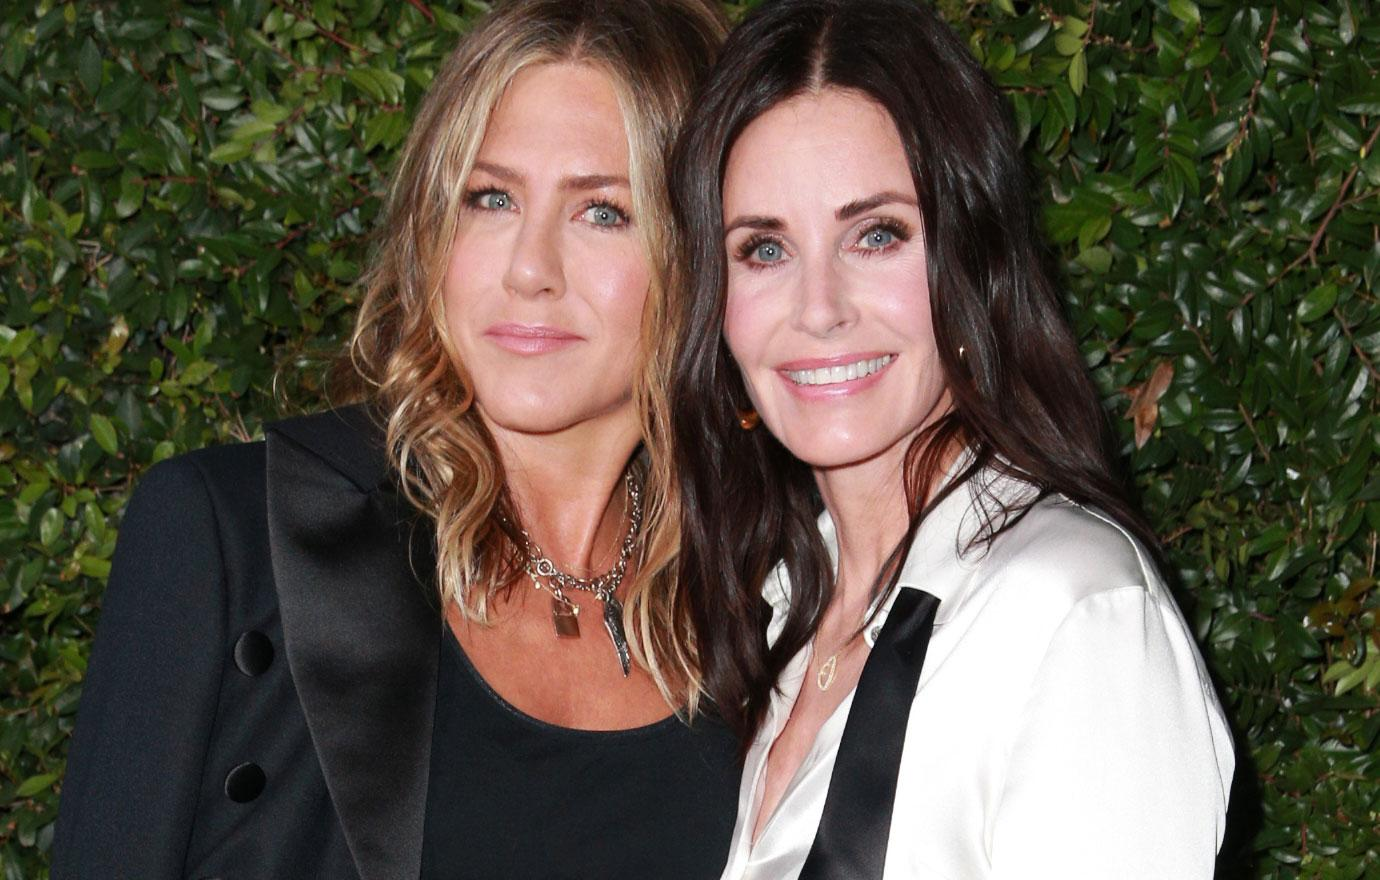 Jennifer Aniston And Courtney Cox Attend Chanel Dinner